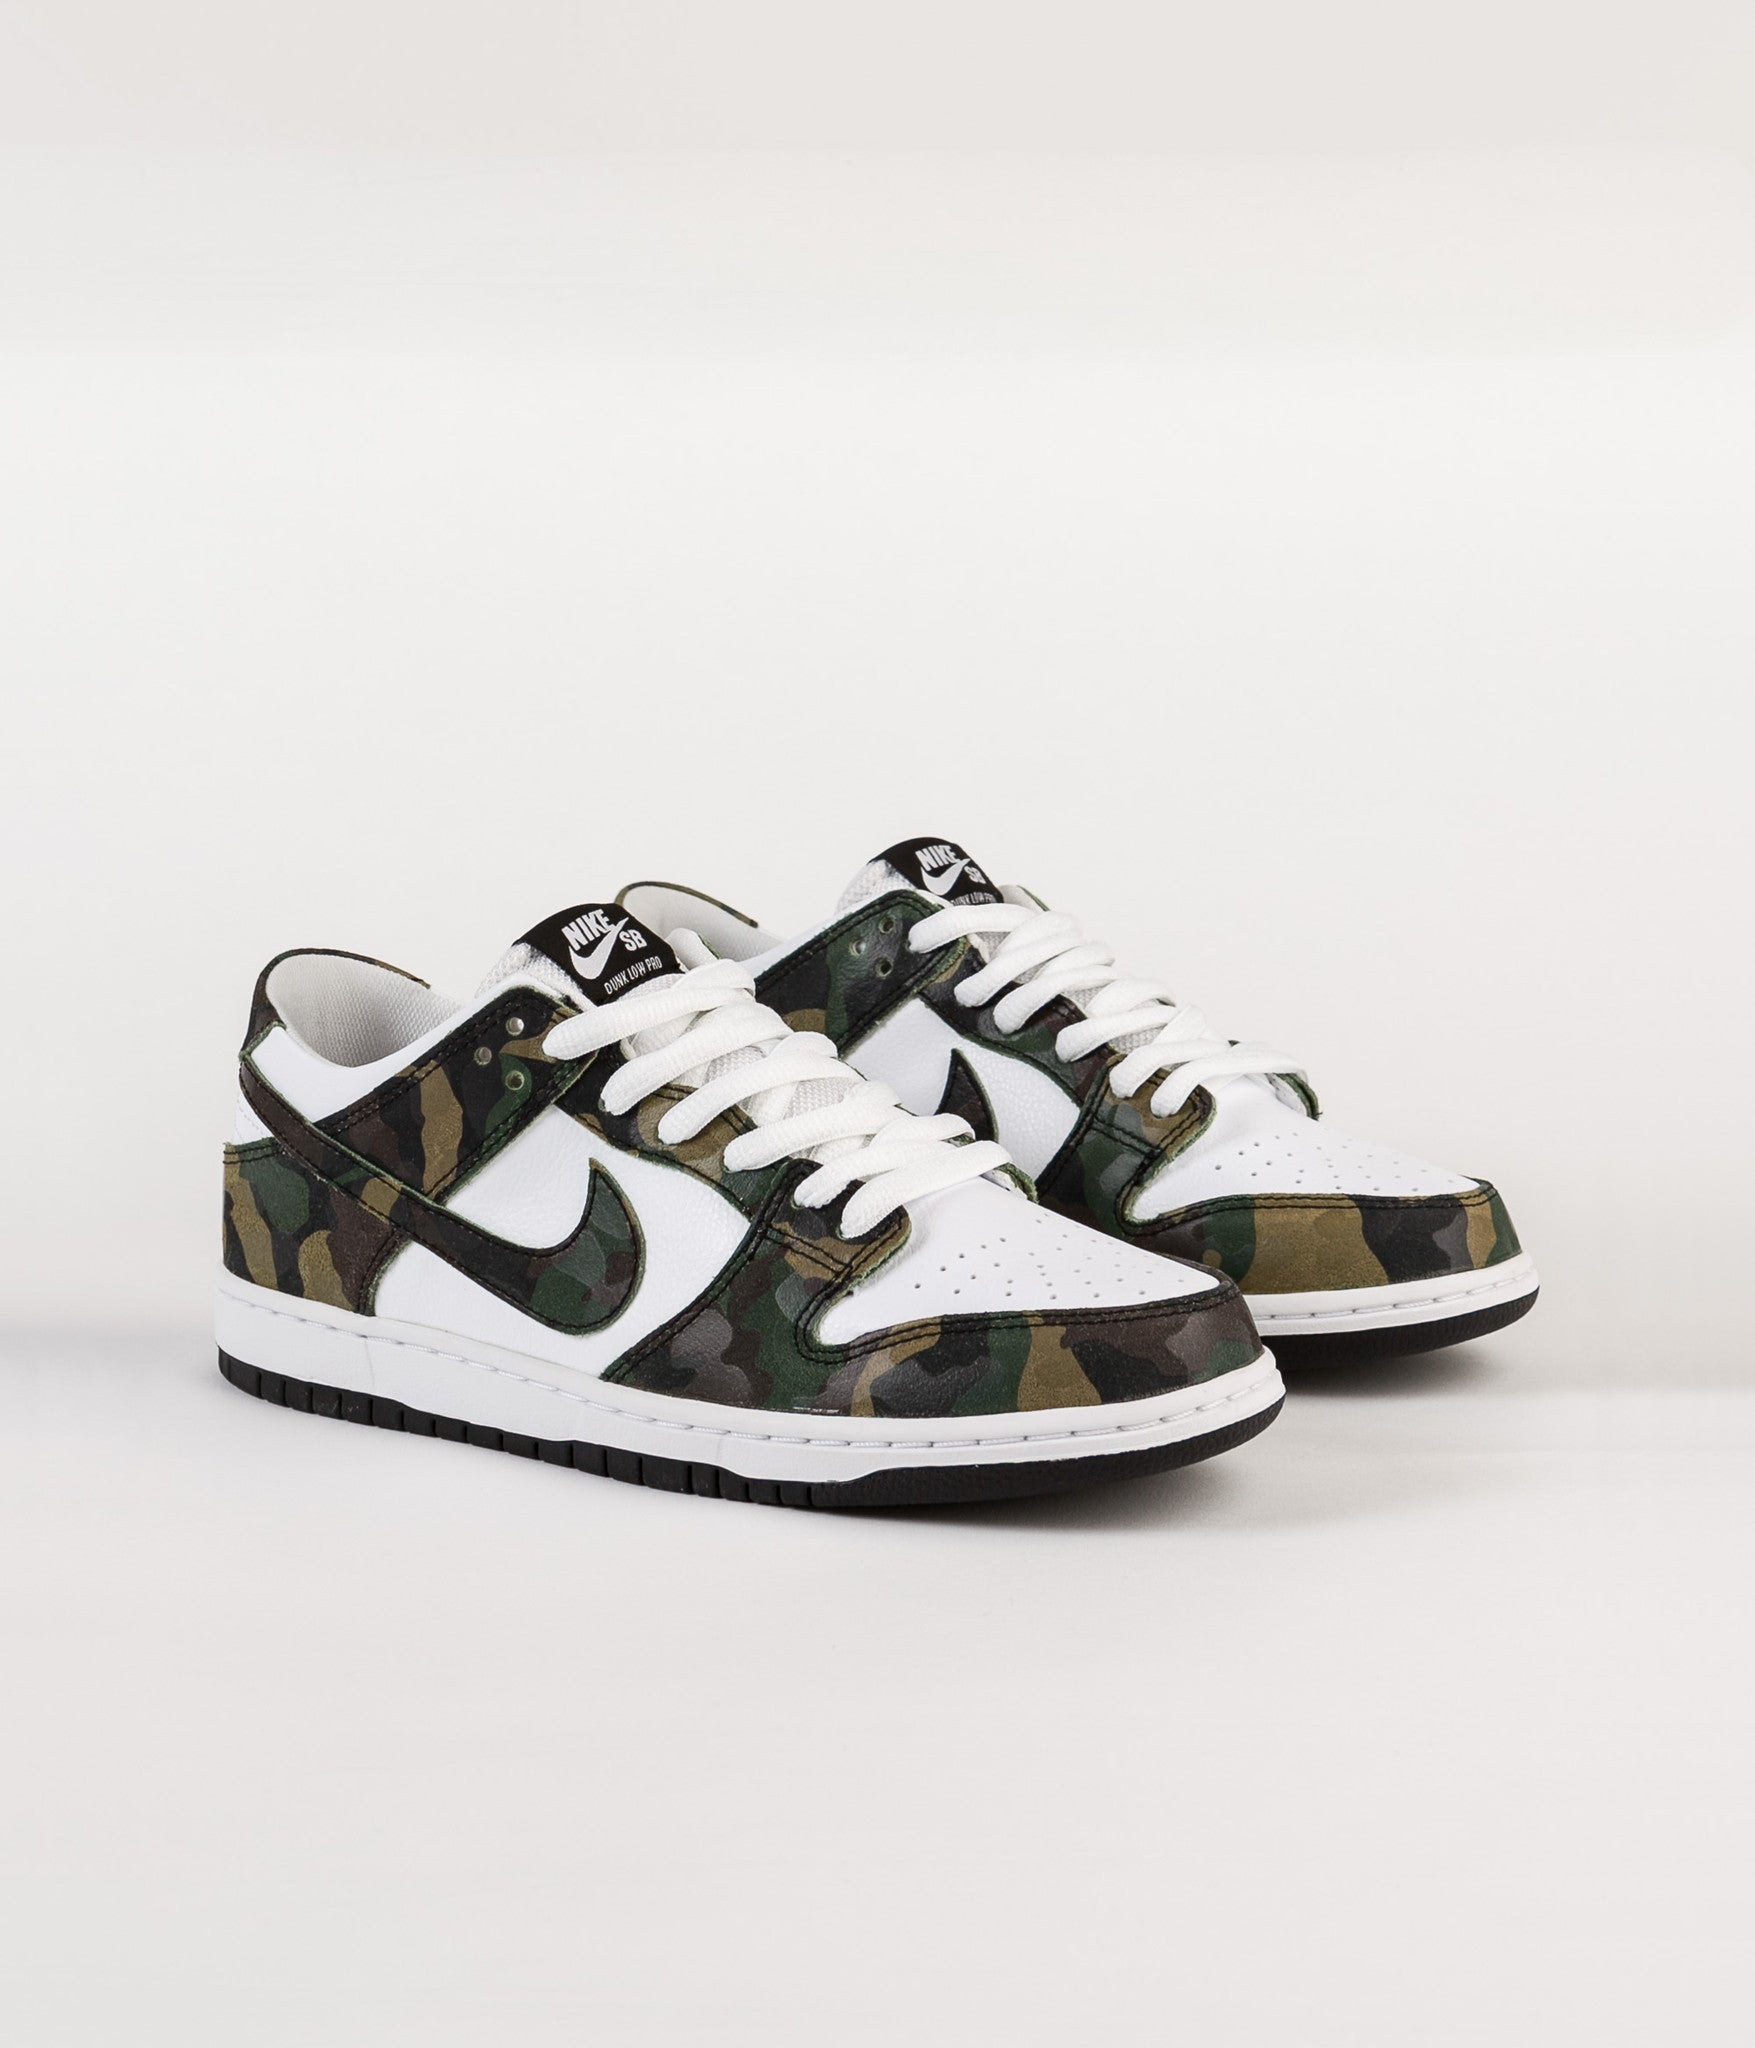 ... Nike SB Dunk Low Pro Shoes - Legion Green   Legion Green - White -  Black ... 7fe47a2382940